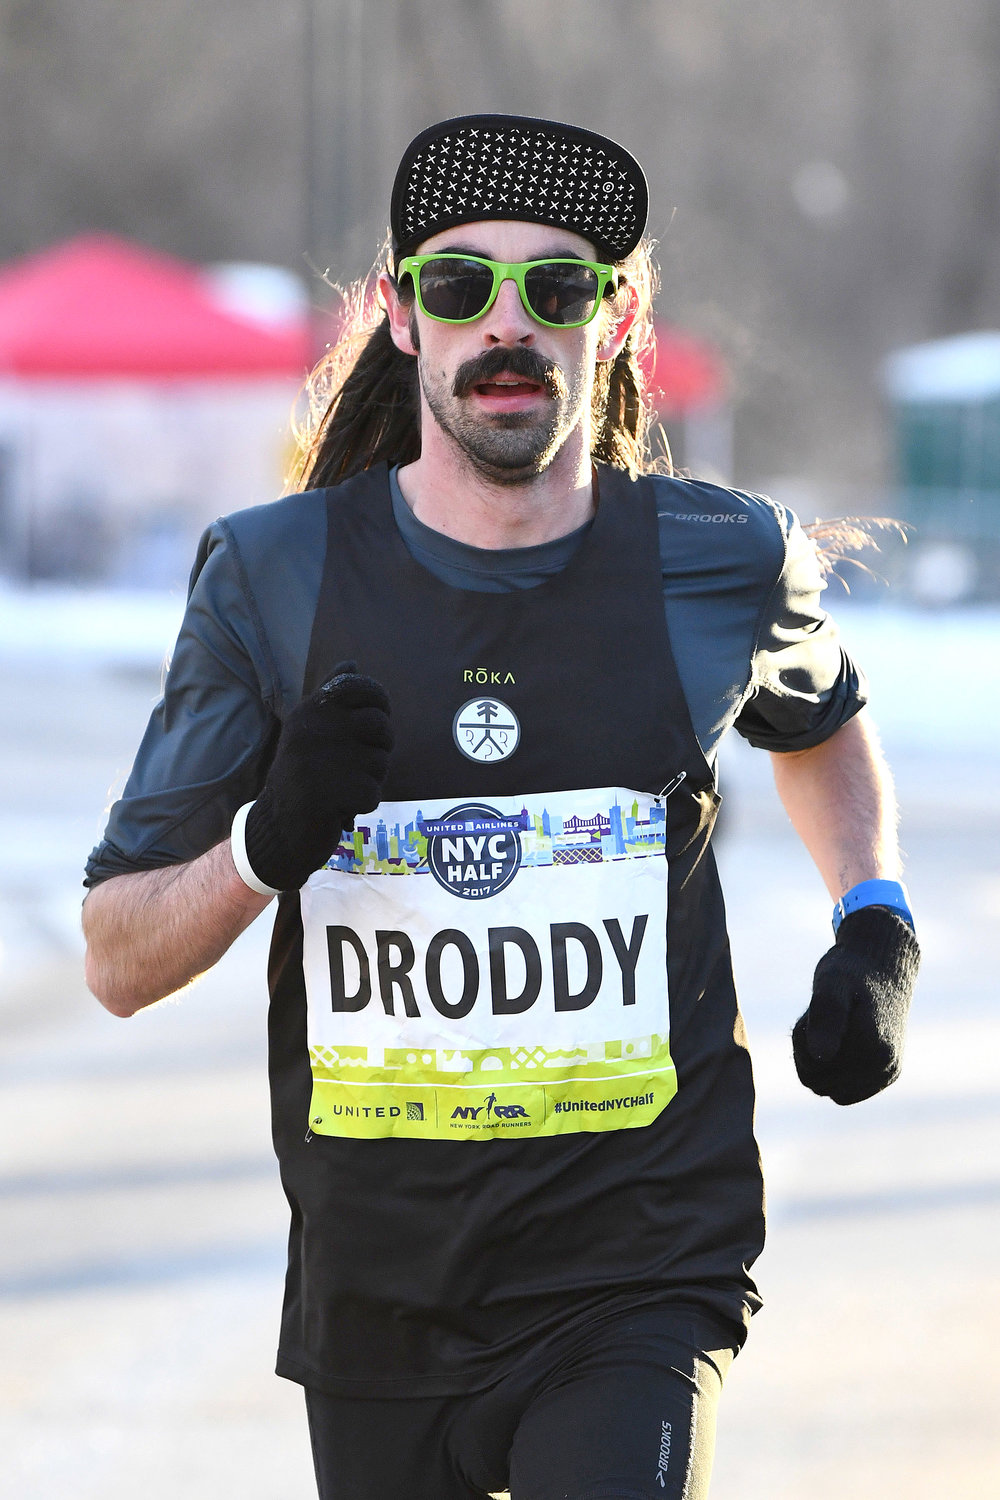 Noah Droddy—long hair, sunglasses, moustache, and all—racing to a new personal best at the 2017 United Airlines NYC Half.